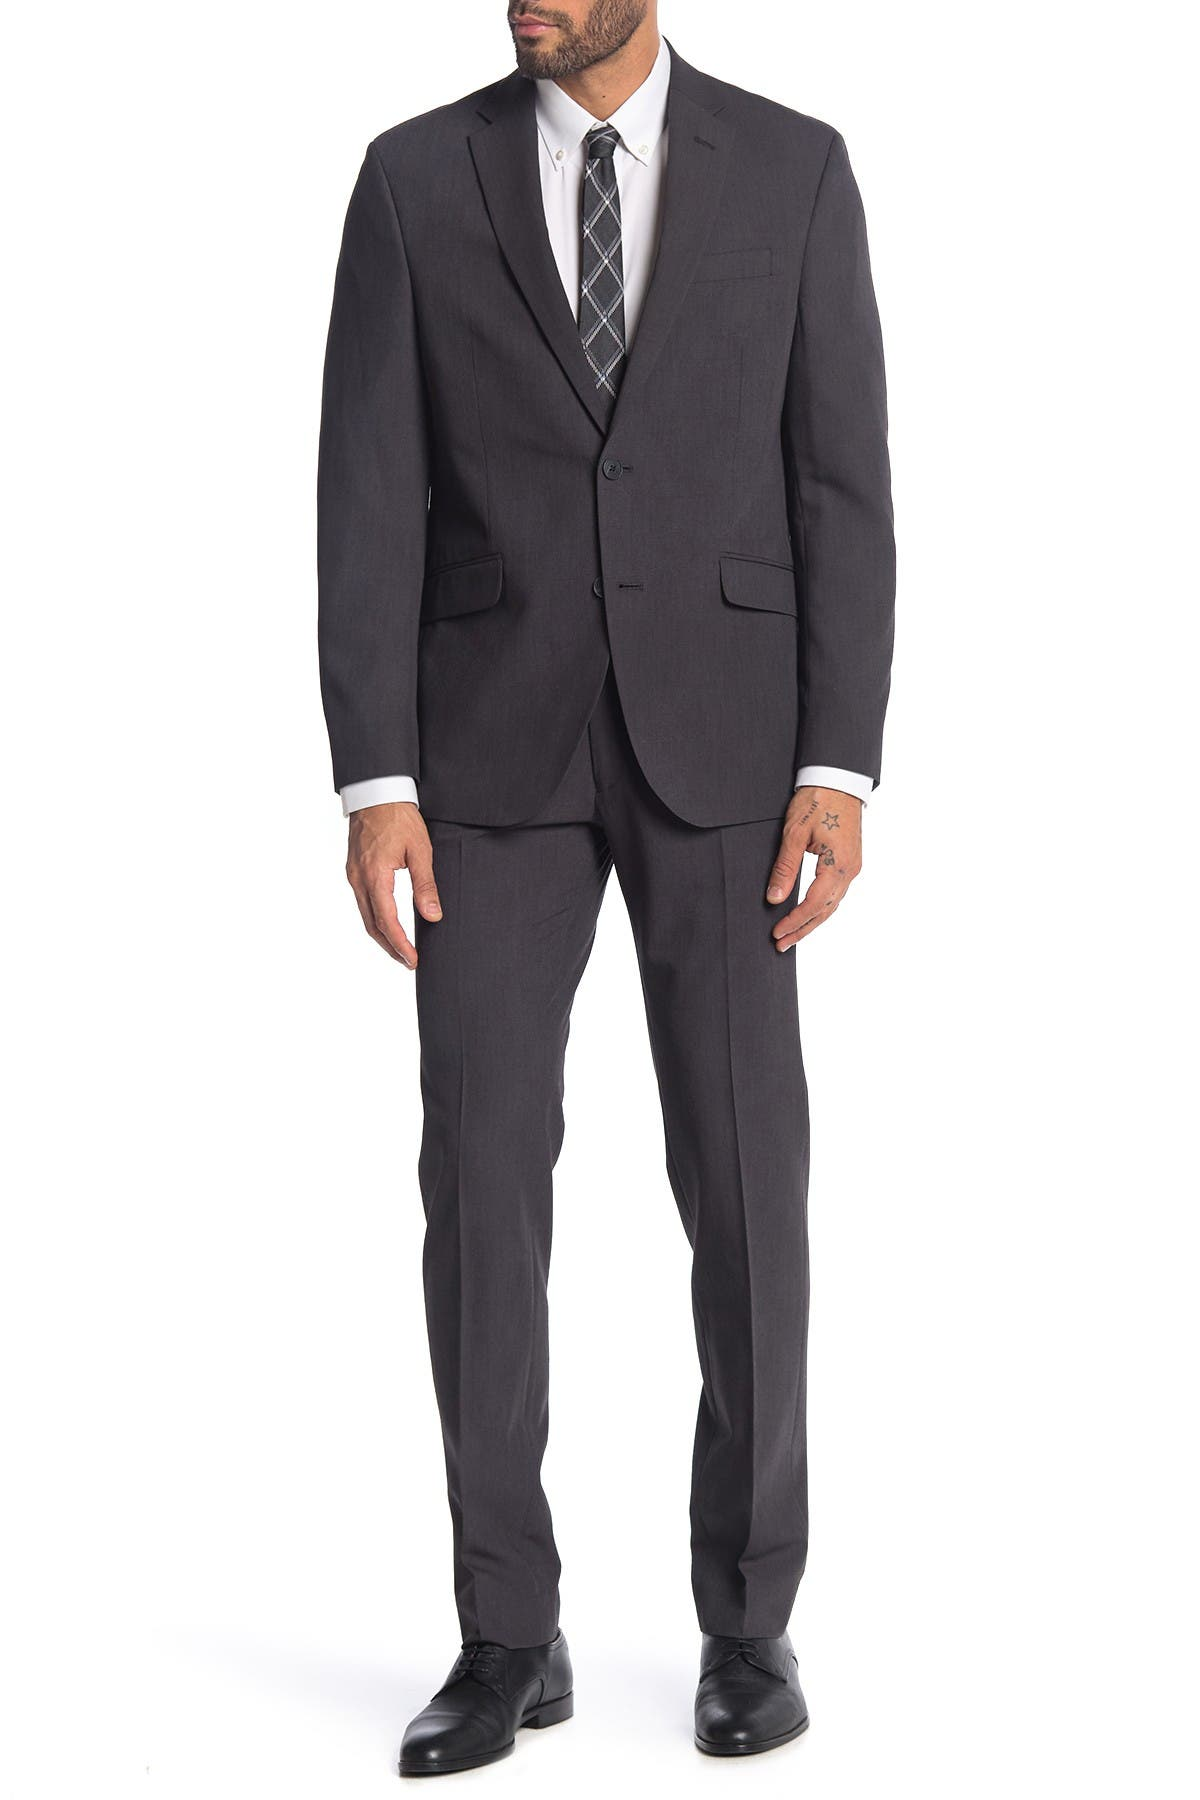 Image of Kenneth Cole Reaction Solid Grey 2-Piece Trim Fit Suit